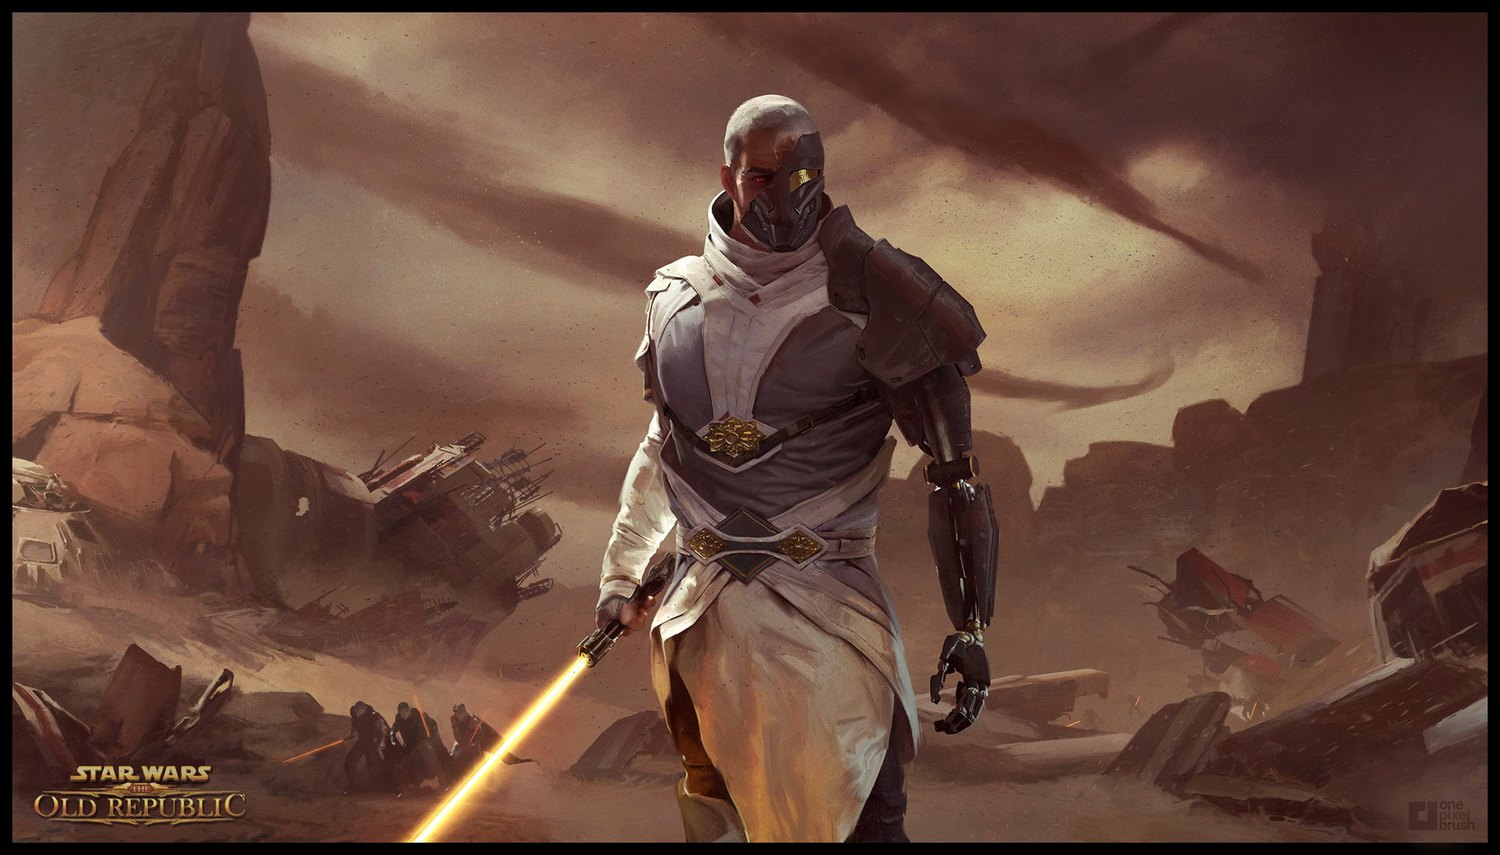 THE OLD REPUBLIC: ARCANN